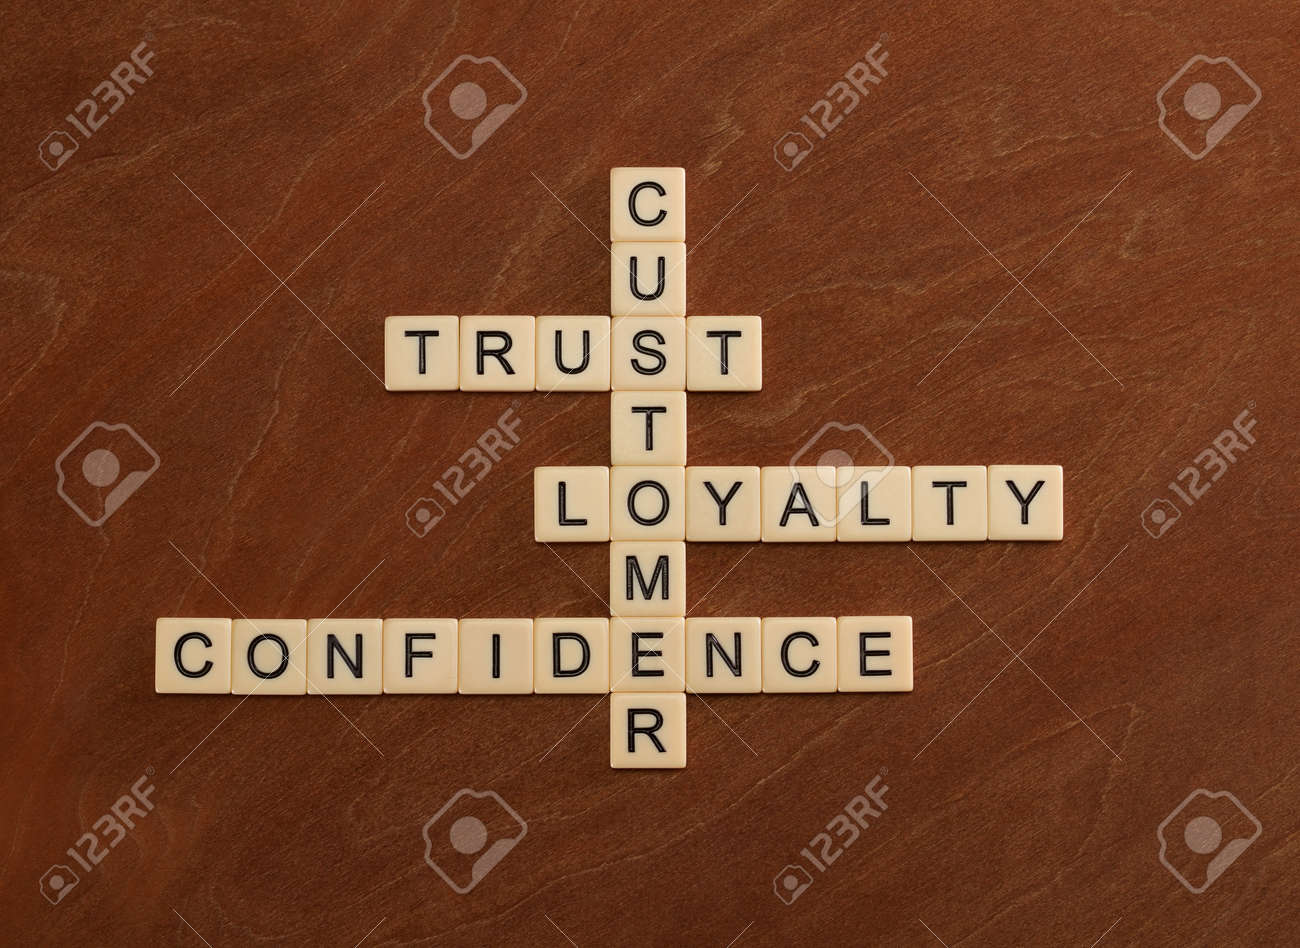 Crossword Puzzle With Words Trust Loyalty Confidence Customer